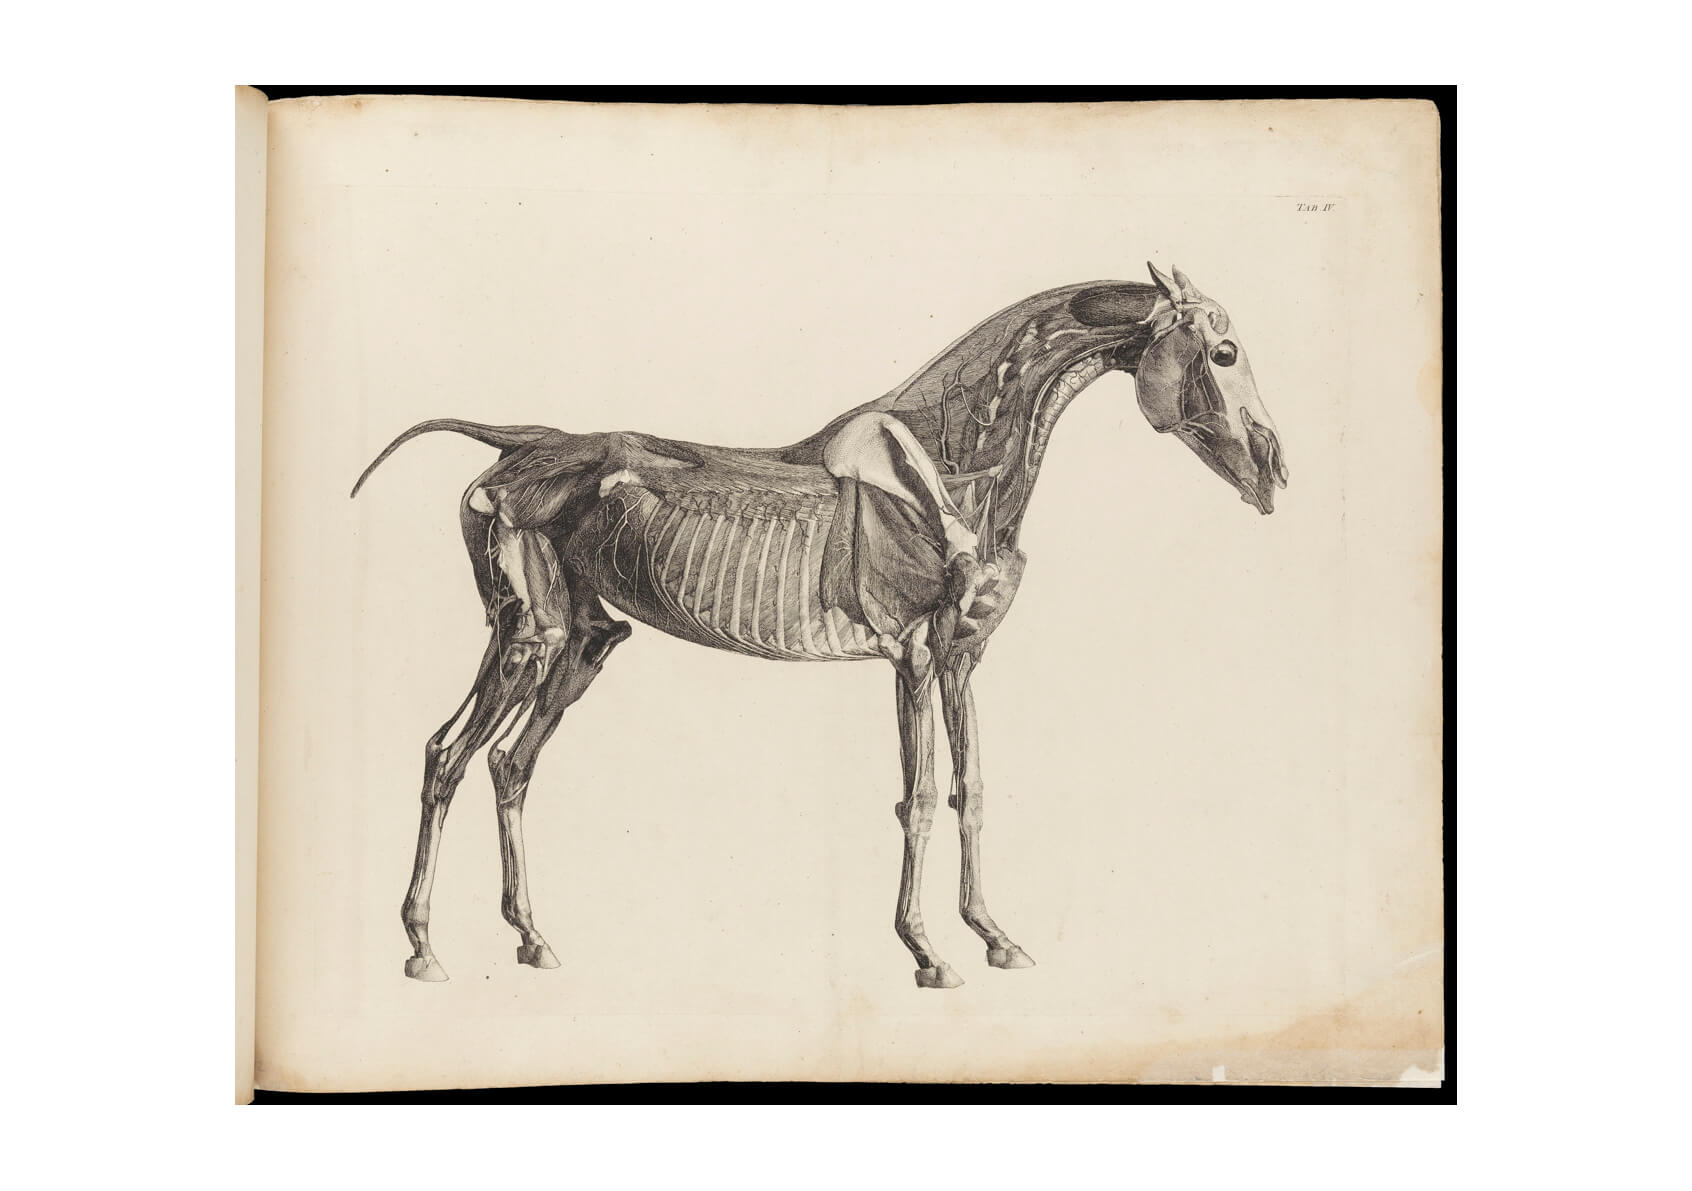 George Stubbs - Muscles bones and blood-vessels of a horse